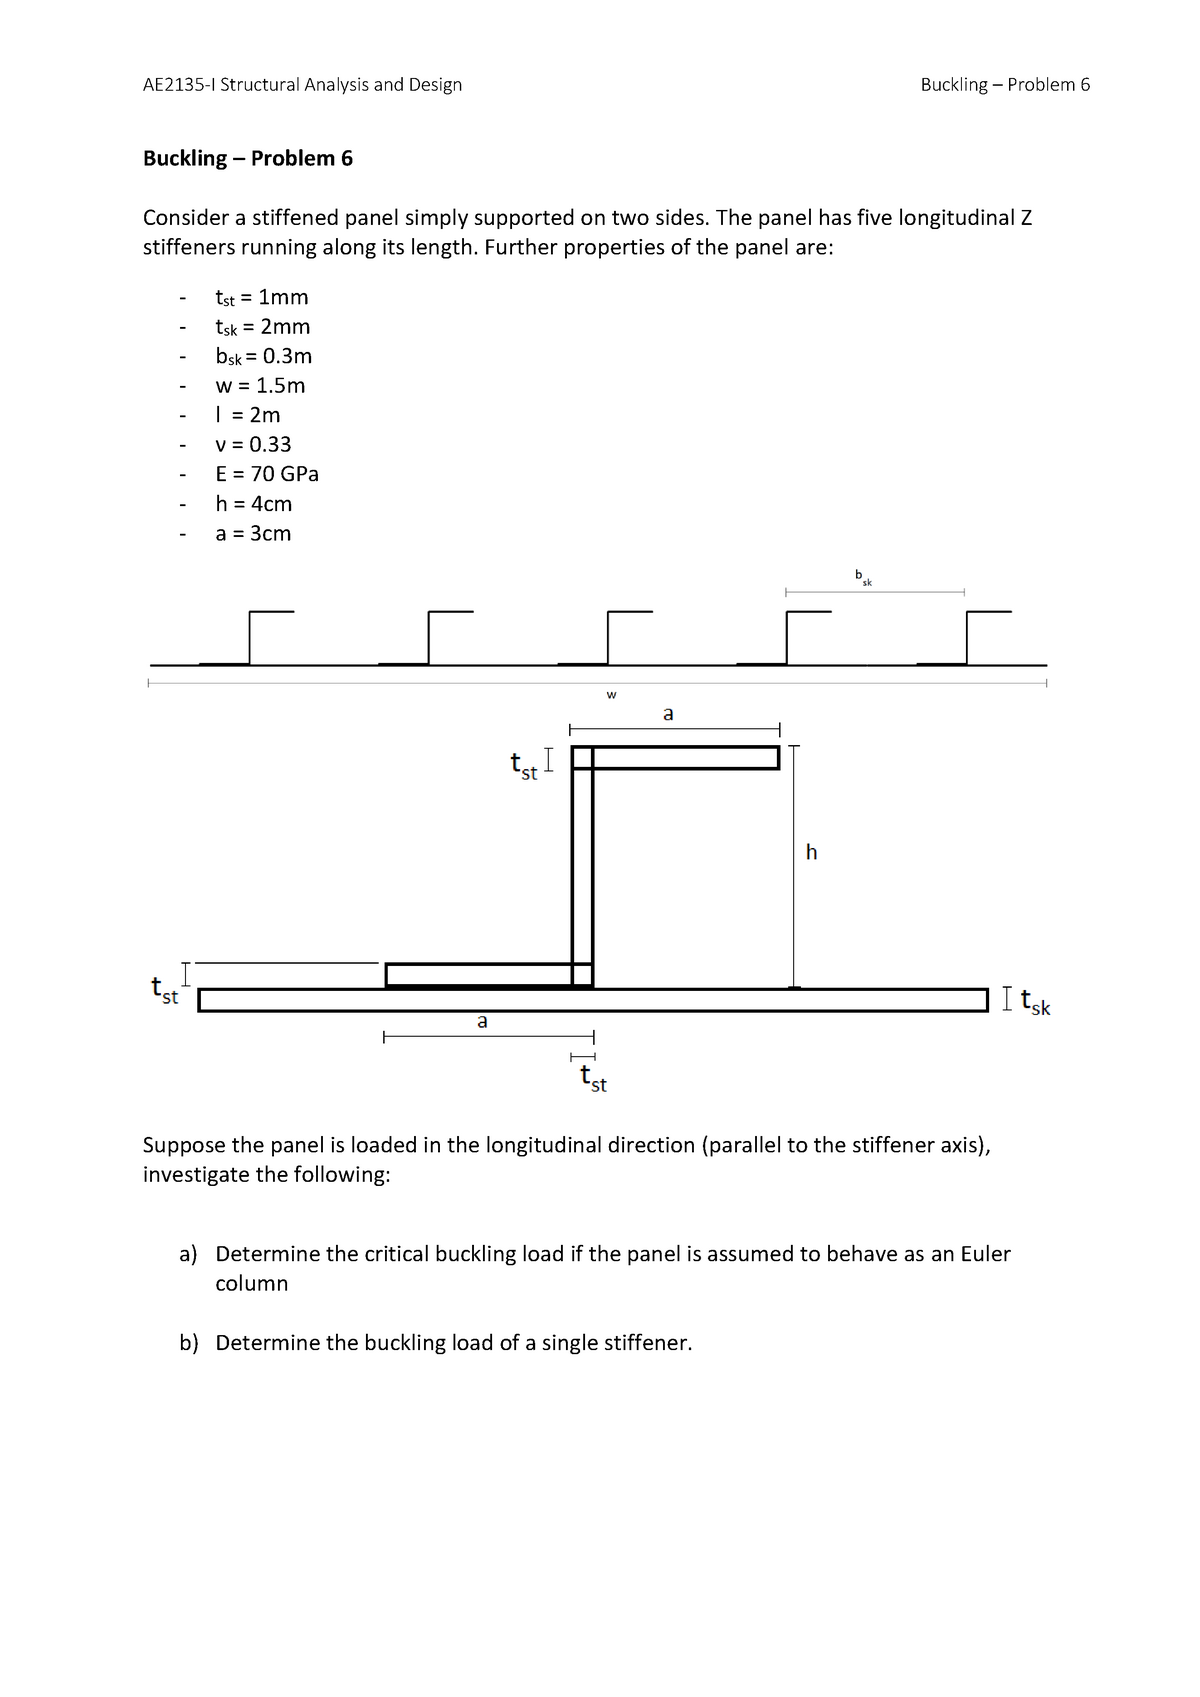 Seminar assignments - Solution F-6 - AE2135-I: Structural